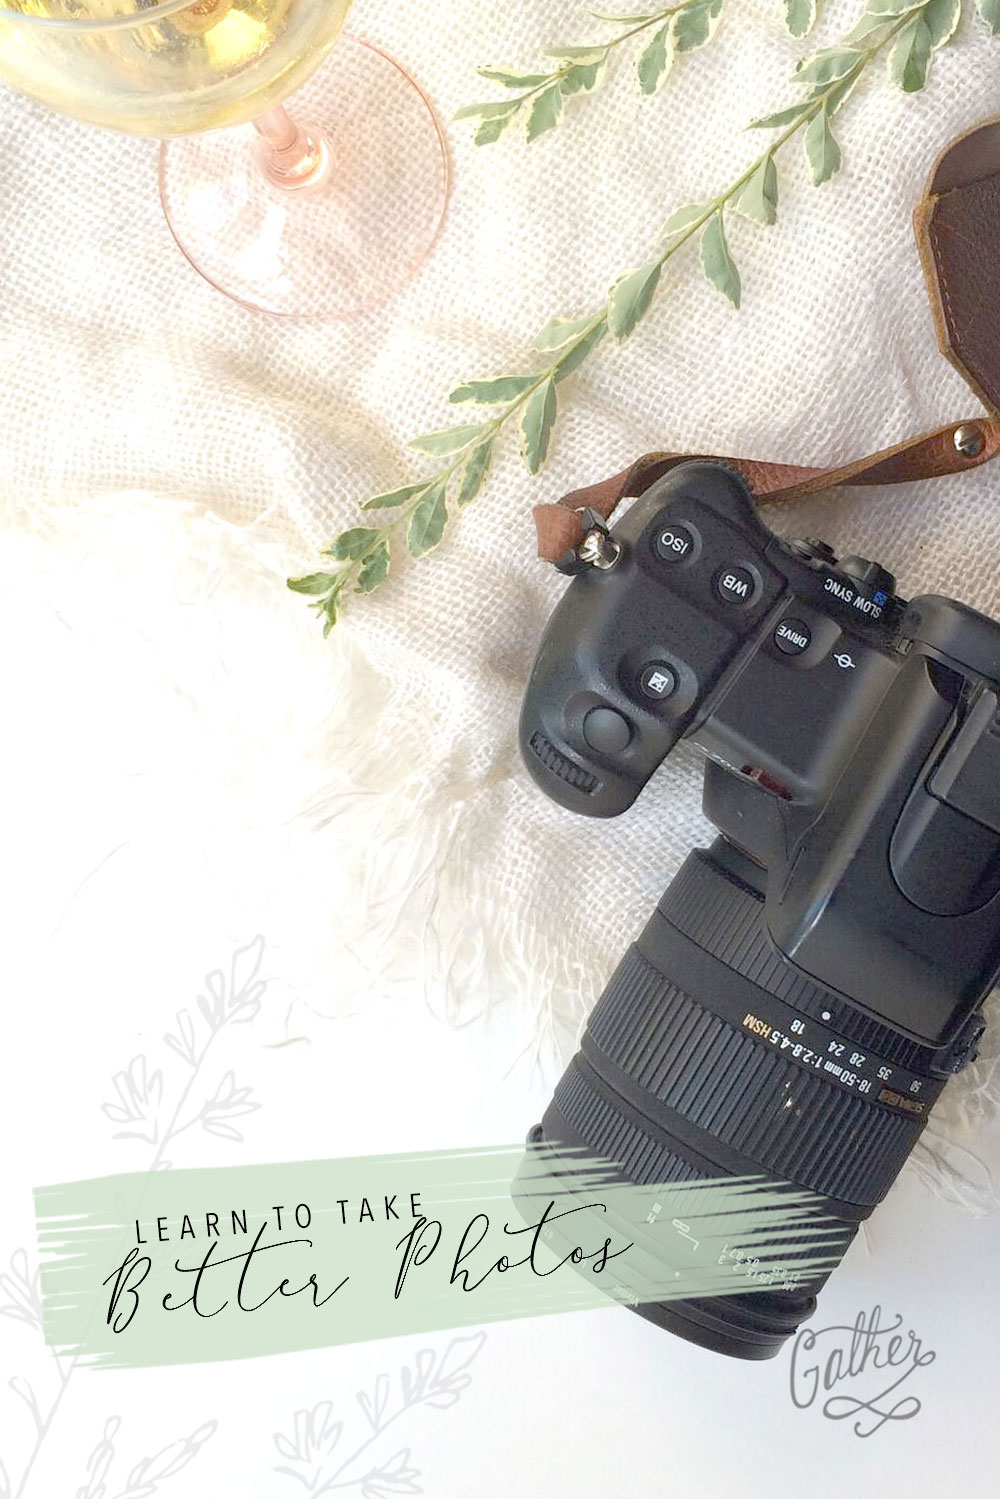 Cameras & Cocktails Class | Gather Goods Co